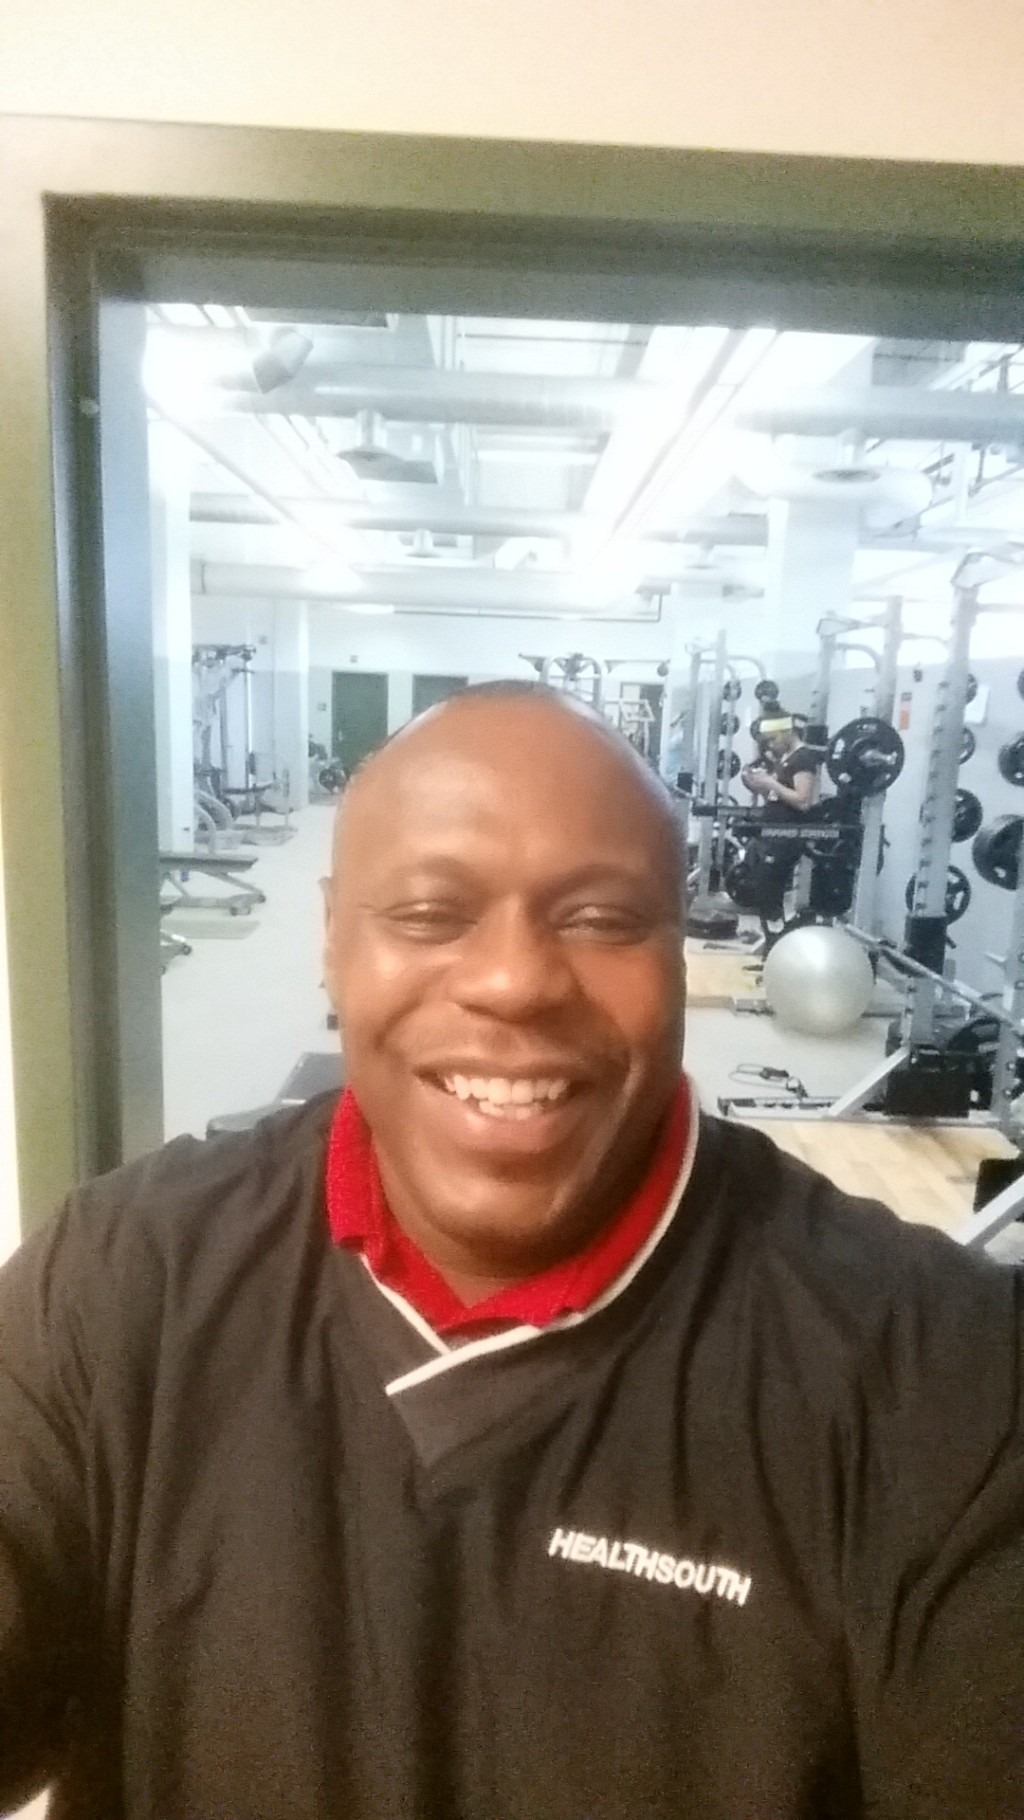 Personal Trainer Chicago, Illinois - Sharrod Graham